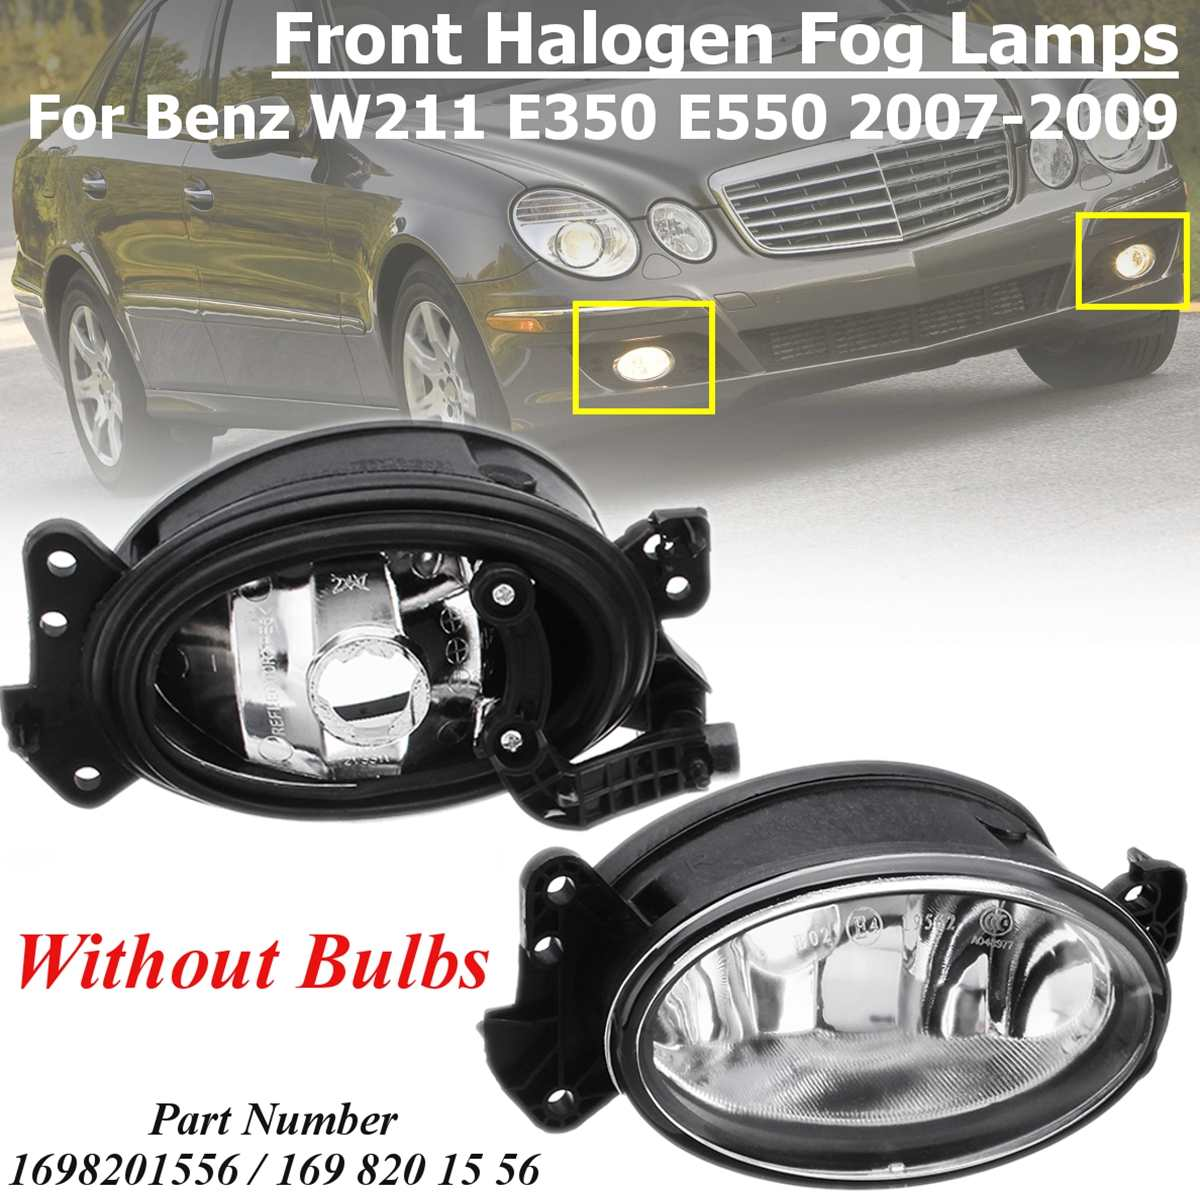 MB2593117 1698201556 1 Pair L+R Front Halogen Fog Light Lamp No Bulb for Benz W204 C230 <font><b>C300</b></font> C350 W211 E320 E350 W164 2007-2009 image